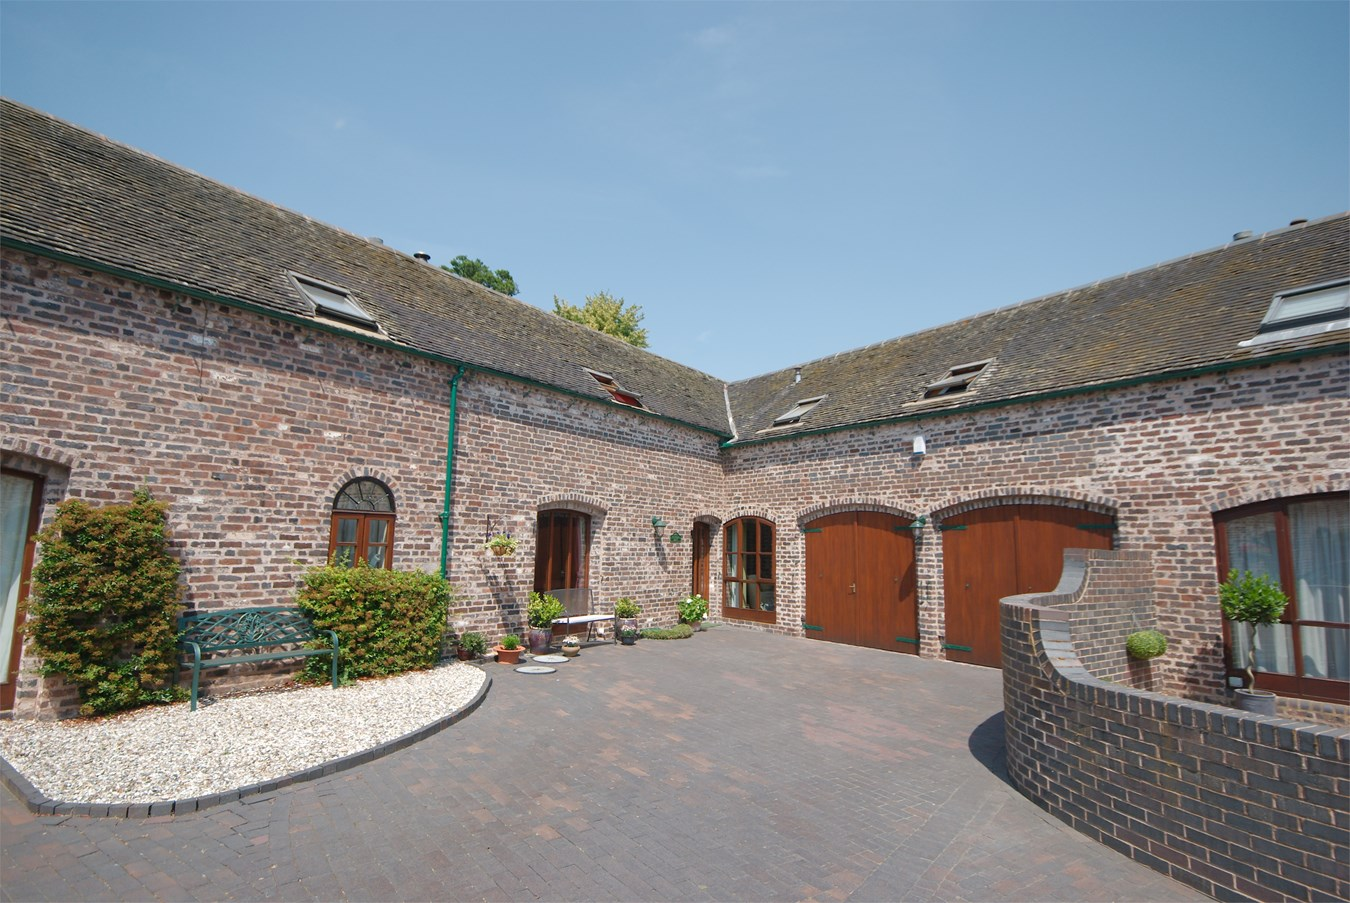 3 Bedroom Barn Conversion For Sale In Walsall